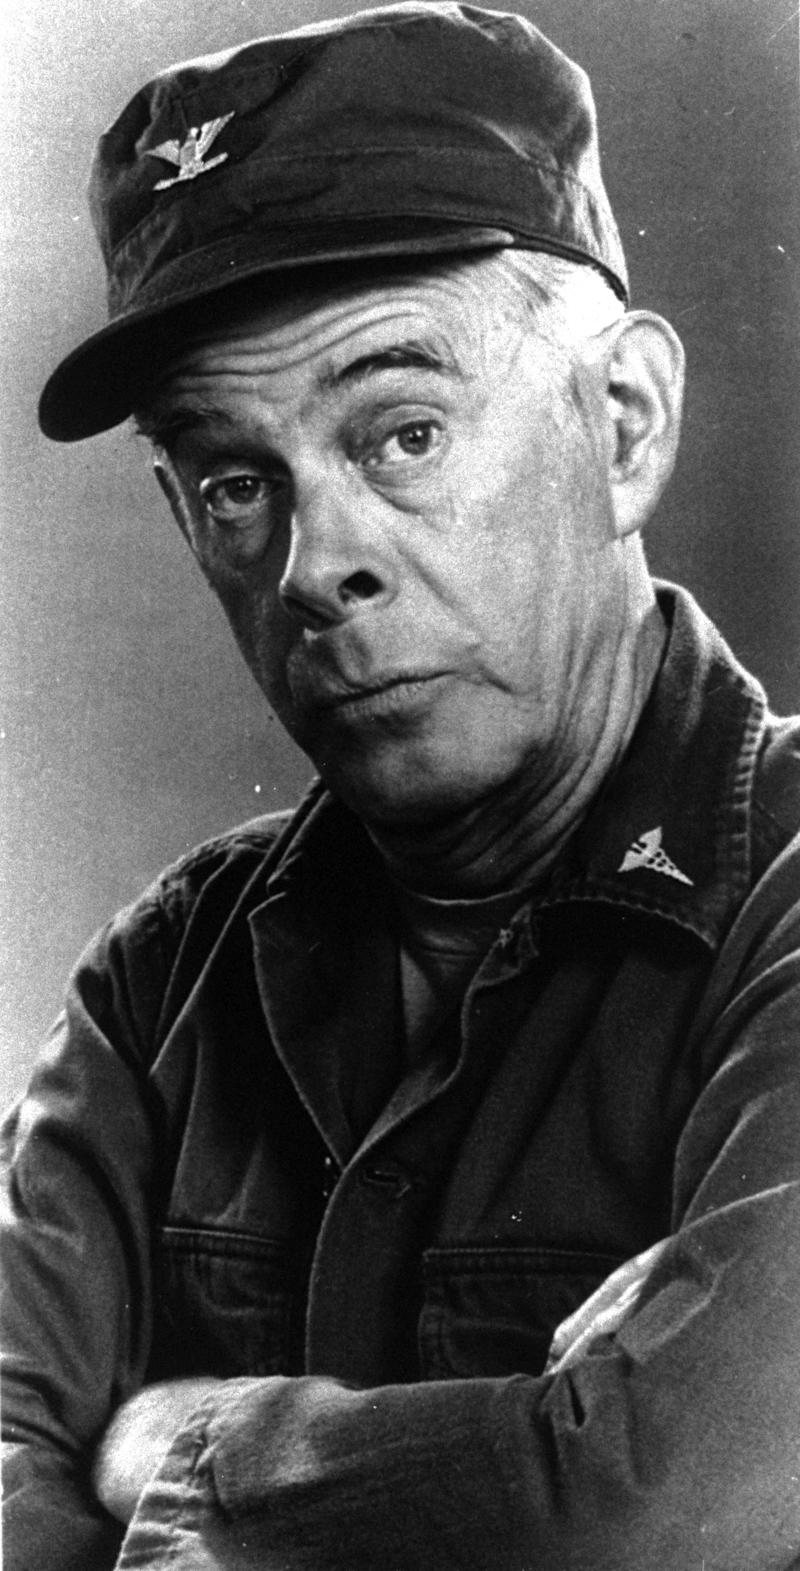 """FILE - In this 1976 handout photo, Harry Morgan poses on the set of his television show """"MASH,""""   The Emmy-winning character actor whose portrayal of the fatherly Col. Potter on television's """"M*A*S*H"""" highlighted a show business career that included nine other TV series, 50 films and the Broadway stage, died Wednesday, Dec. 7, 2011. He was 96.  Morgan appeared in mostly supporting roles on the big screen, playing opposite such stars as Henry Fonda, John Wayne, James Garner, Elvis Presley and Dan Aykroyd. On television, he was more the comedic co-star, including roles on """"December Bride,"""" its spin-off """"Pete and Gladys,"""" as Sgt. Joe Friday's loyal partner in later """"Dragnet"""" episodes and on CBS-TV's long-running """"M-A-S-H"""" series, for which he earned an Emmy award in 1980.  (AP Photo)"""